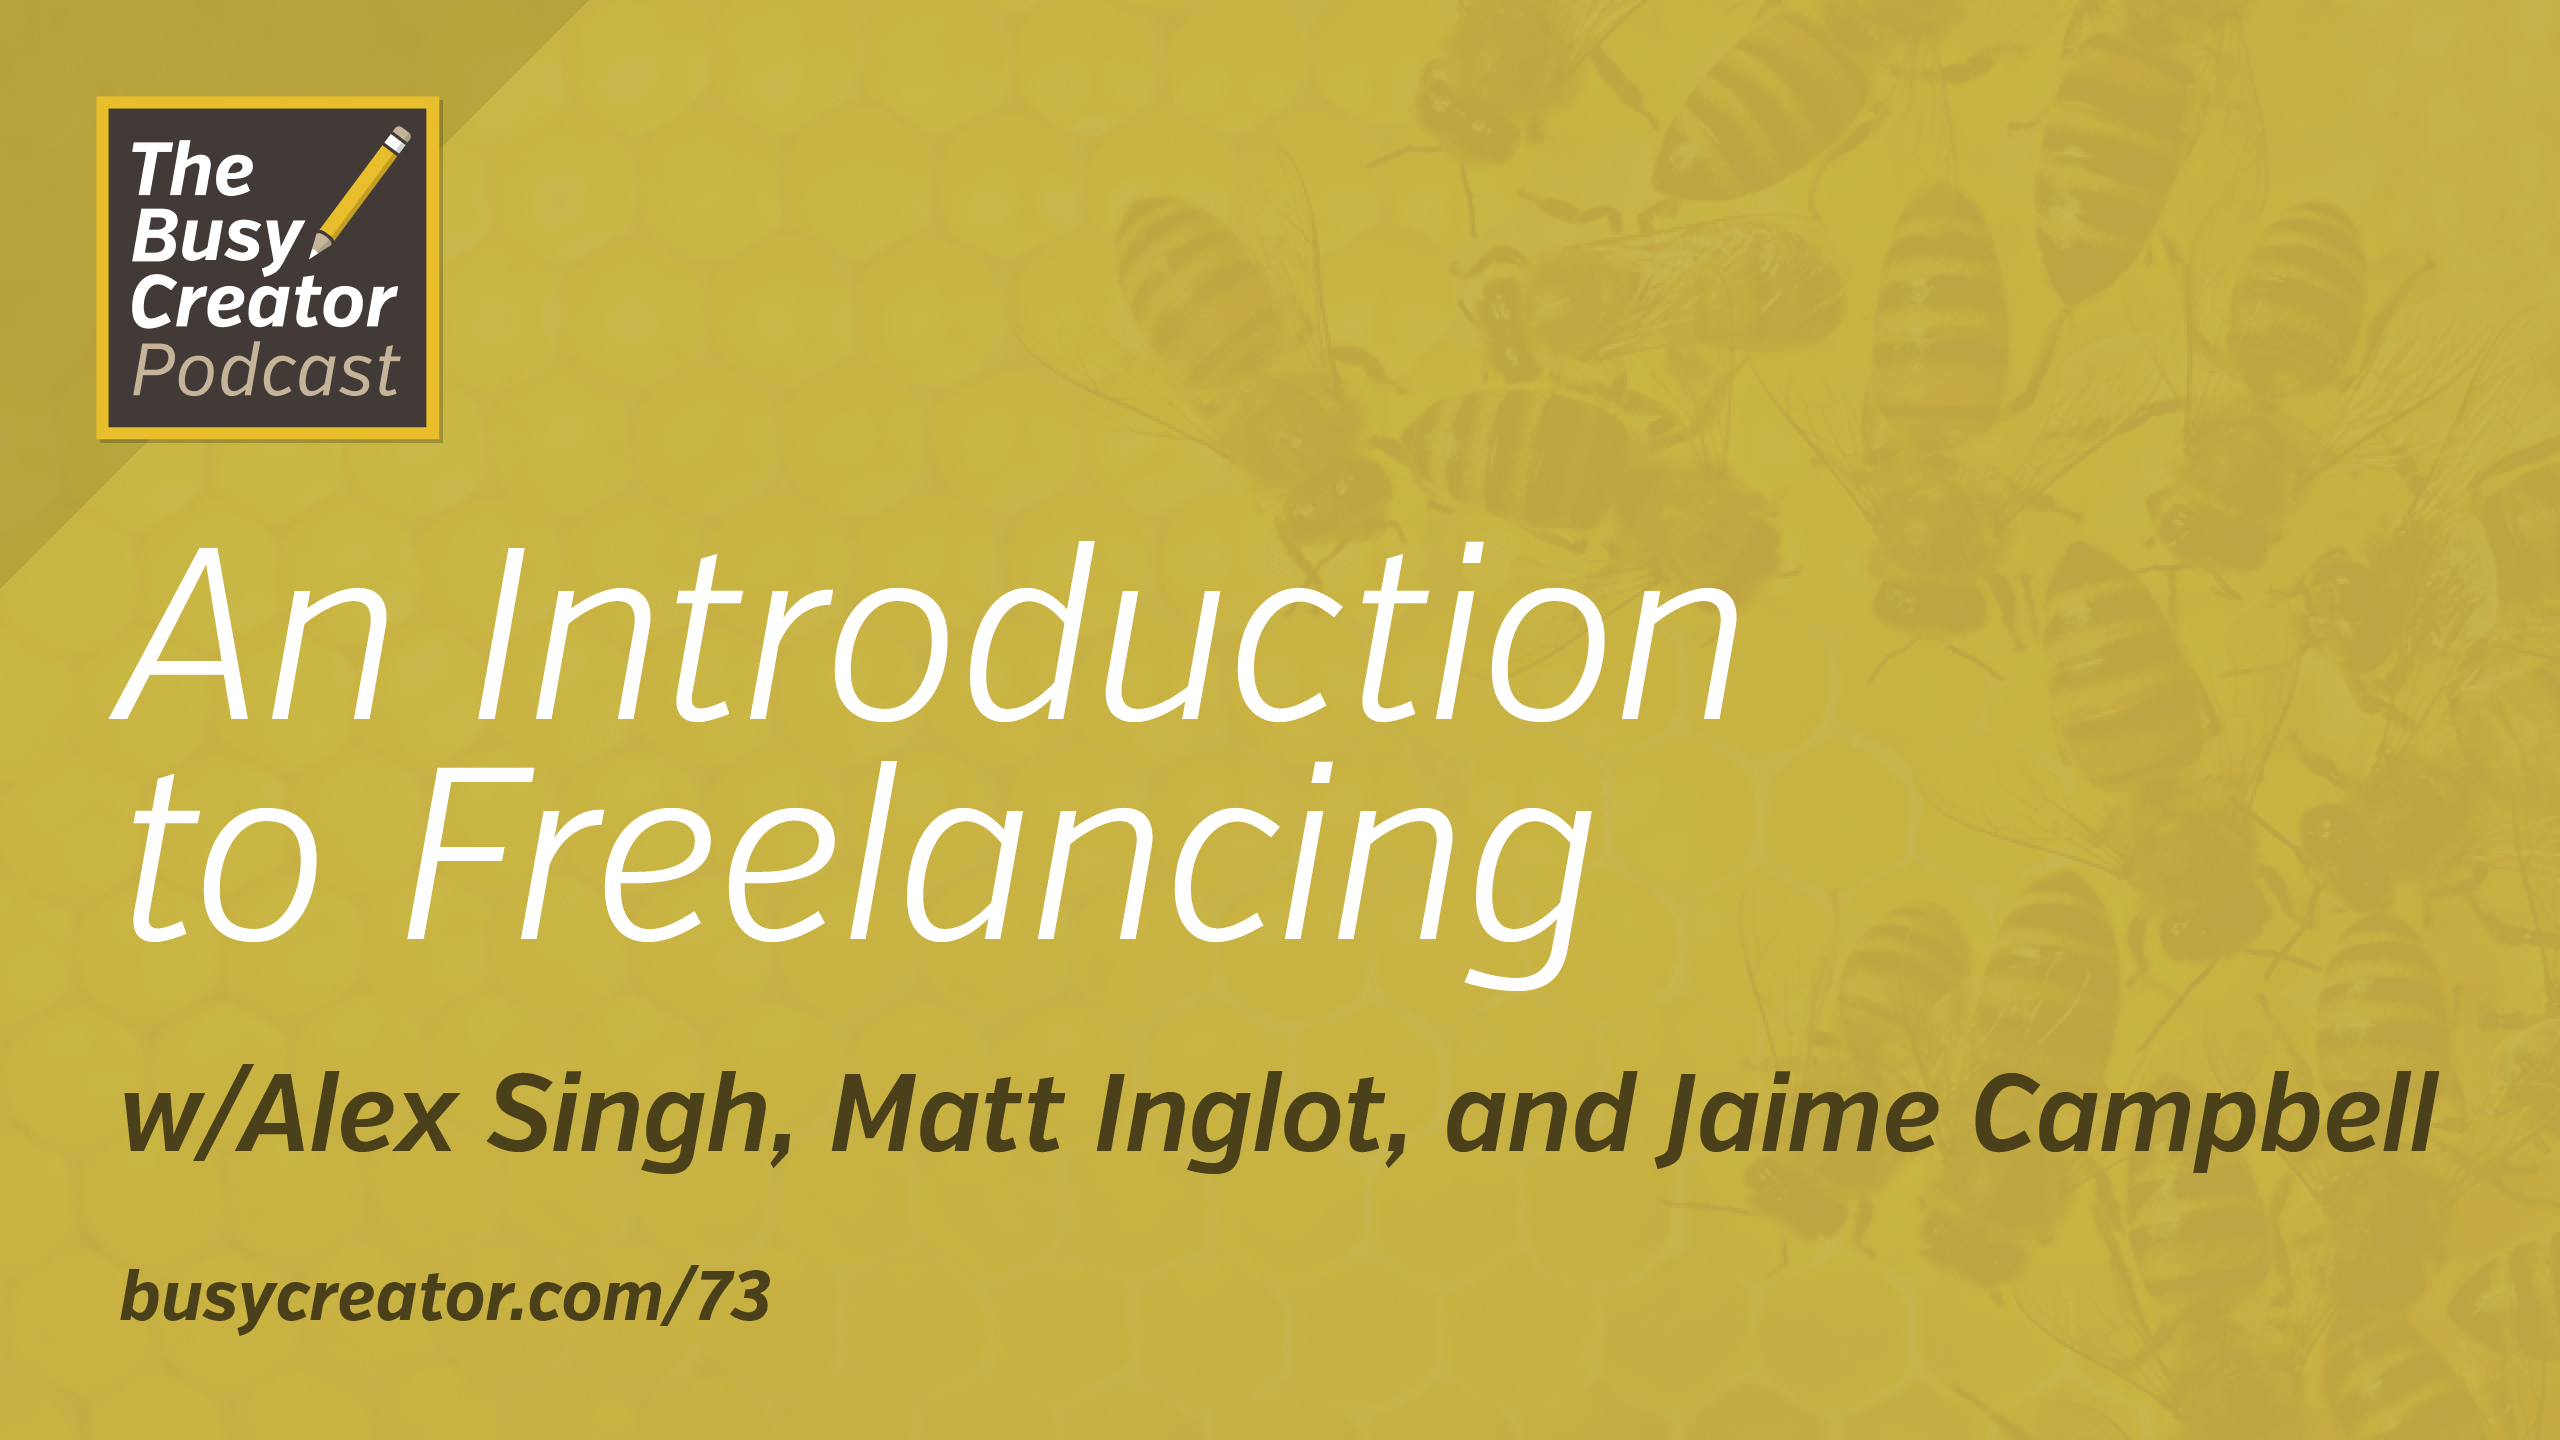 An Introduction to Freelancing —Definitions, ailments, and mindsets for new and veteran freelancers